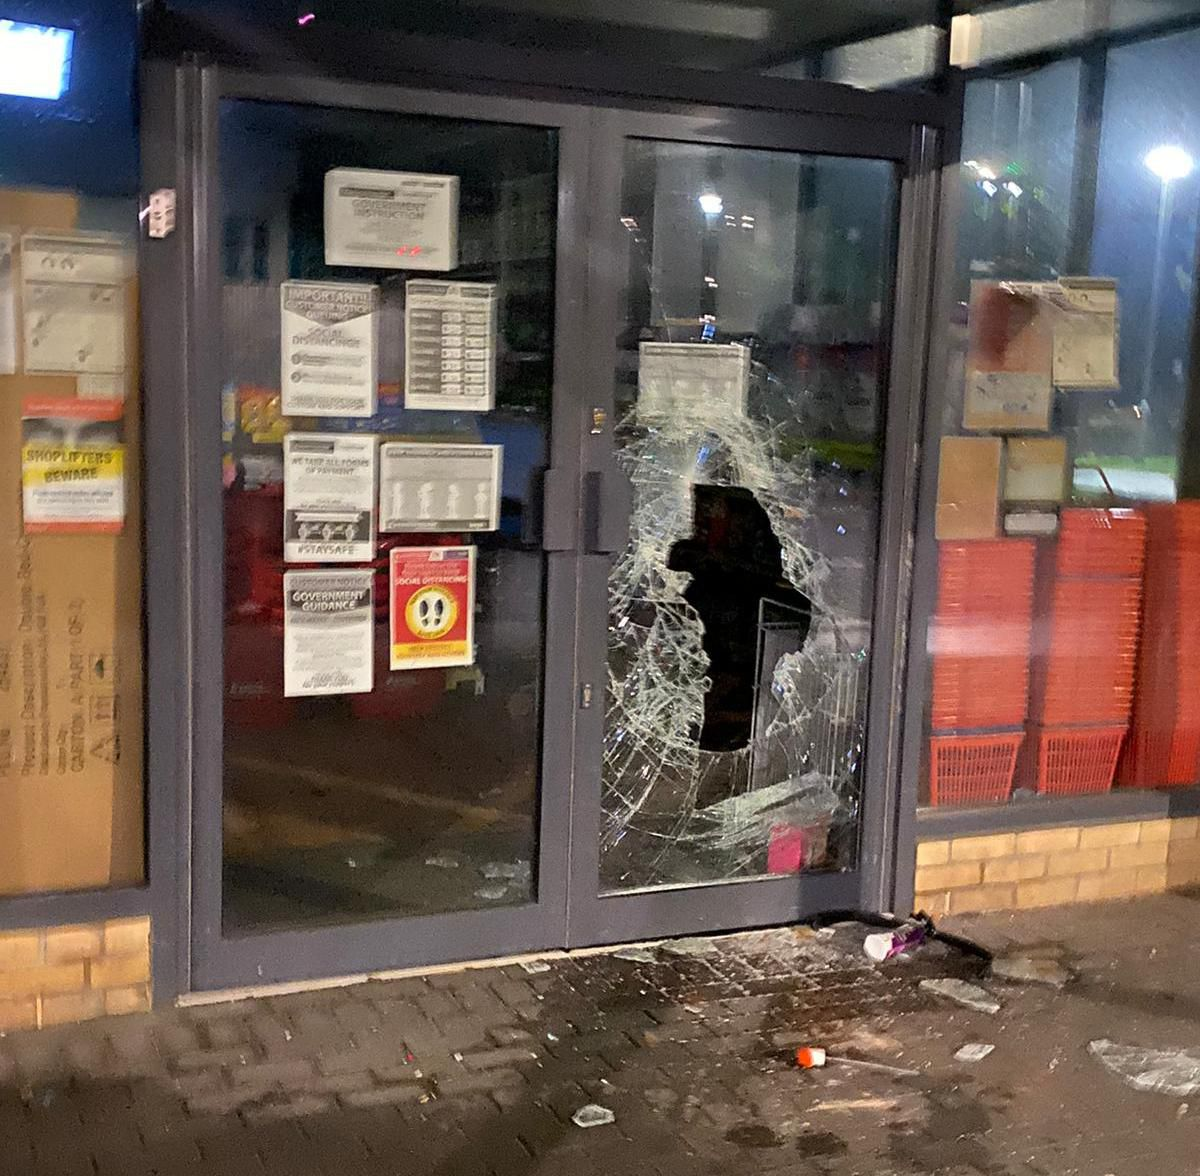 The front door of the Poundstretcher in Madeley, which was broken into this morning